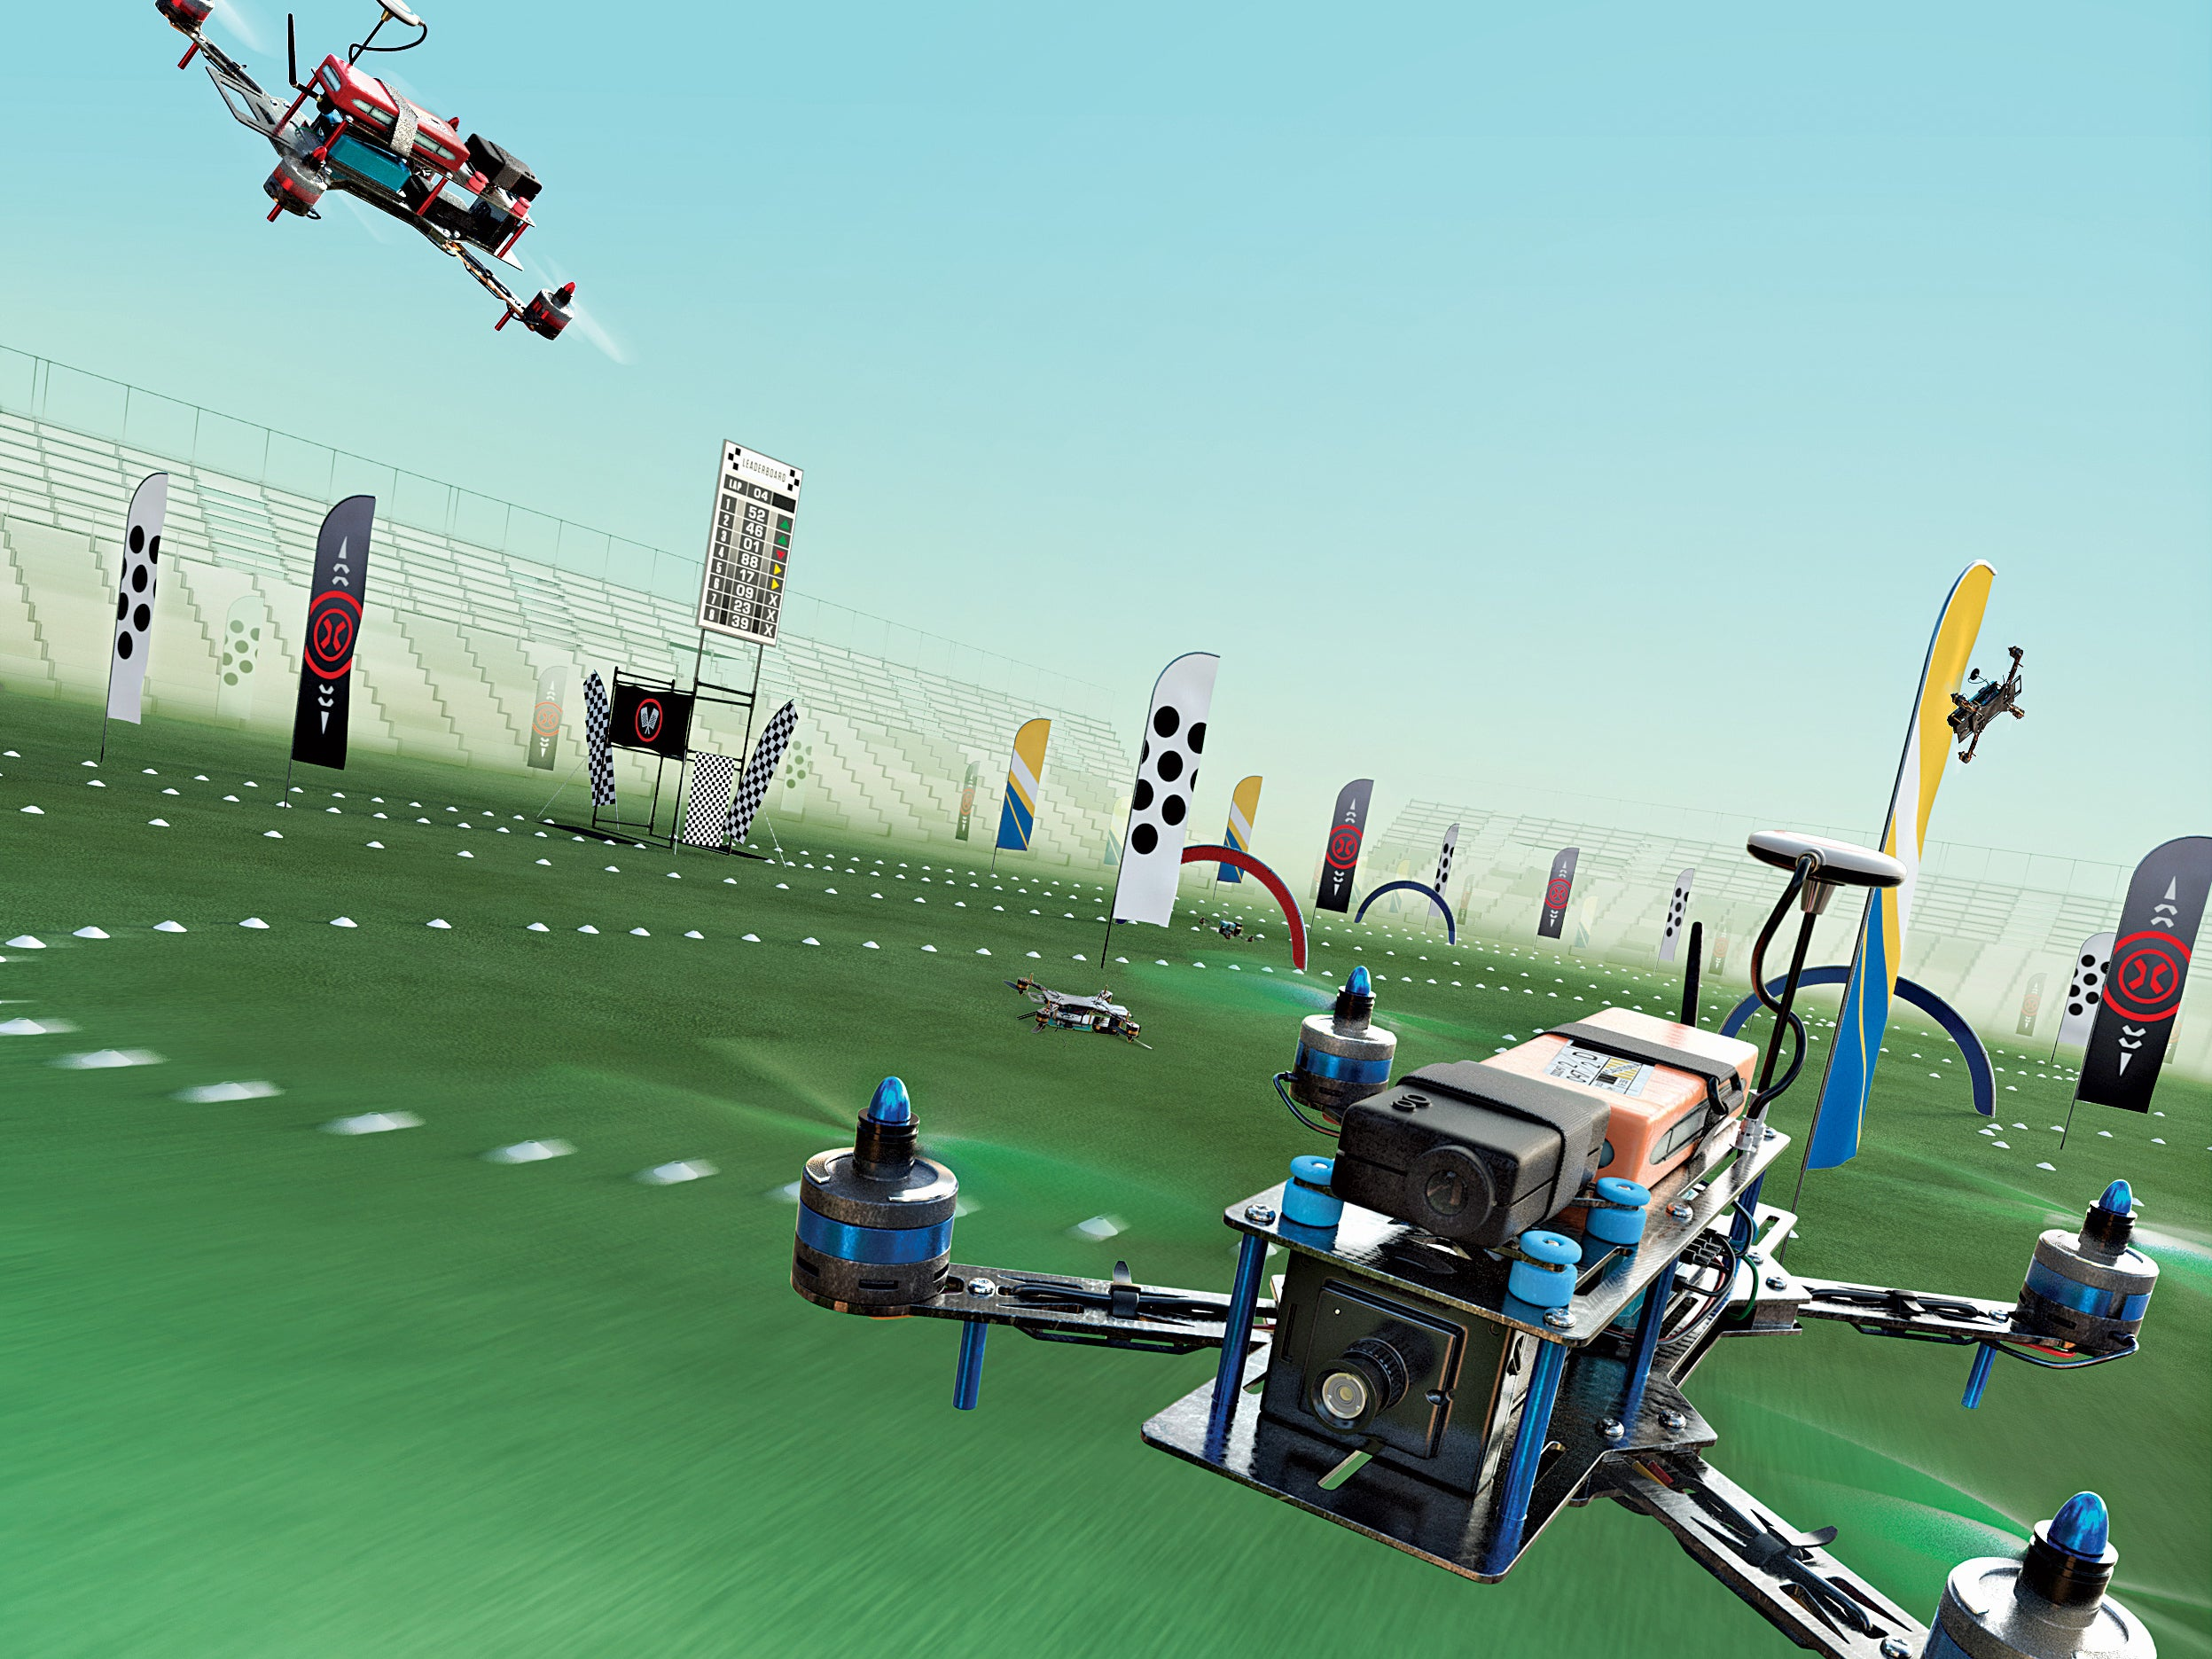 Drone Racing Takes Off